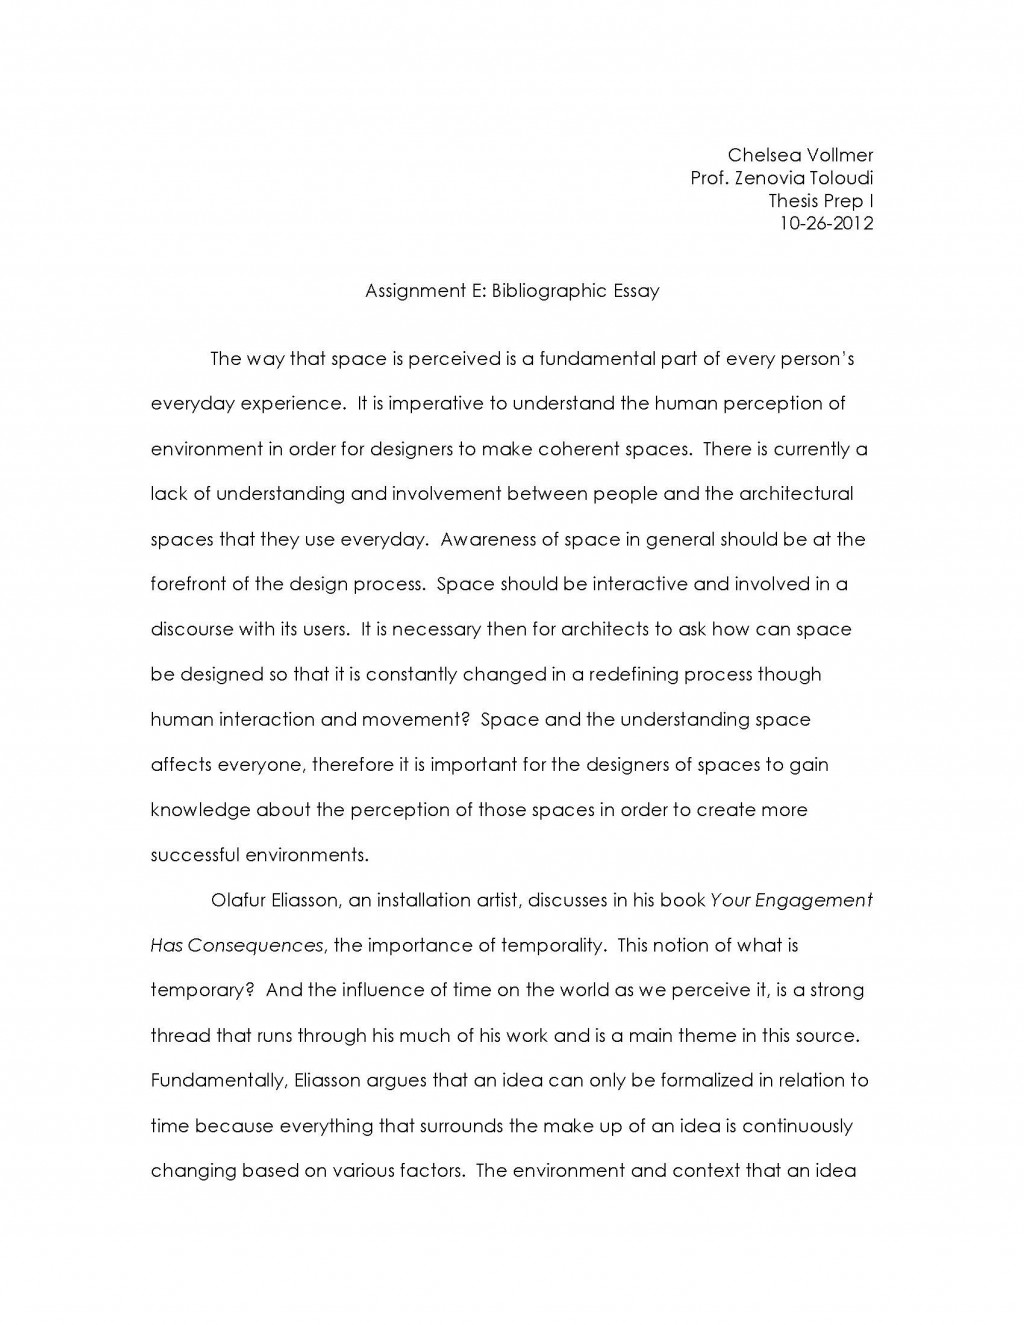 008 Assignment E Page 12 Essay Example Beautiful Satire Examples On Gun Control Questions Ideas Large